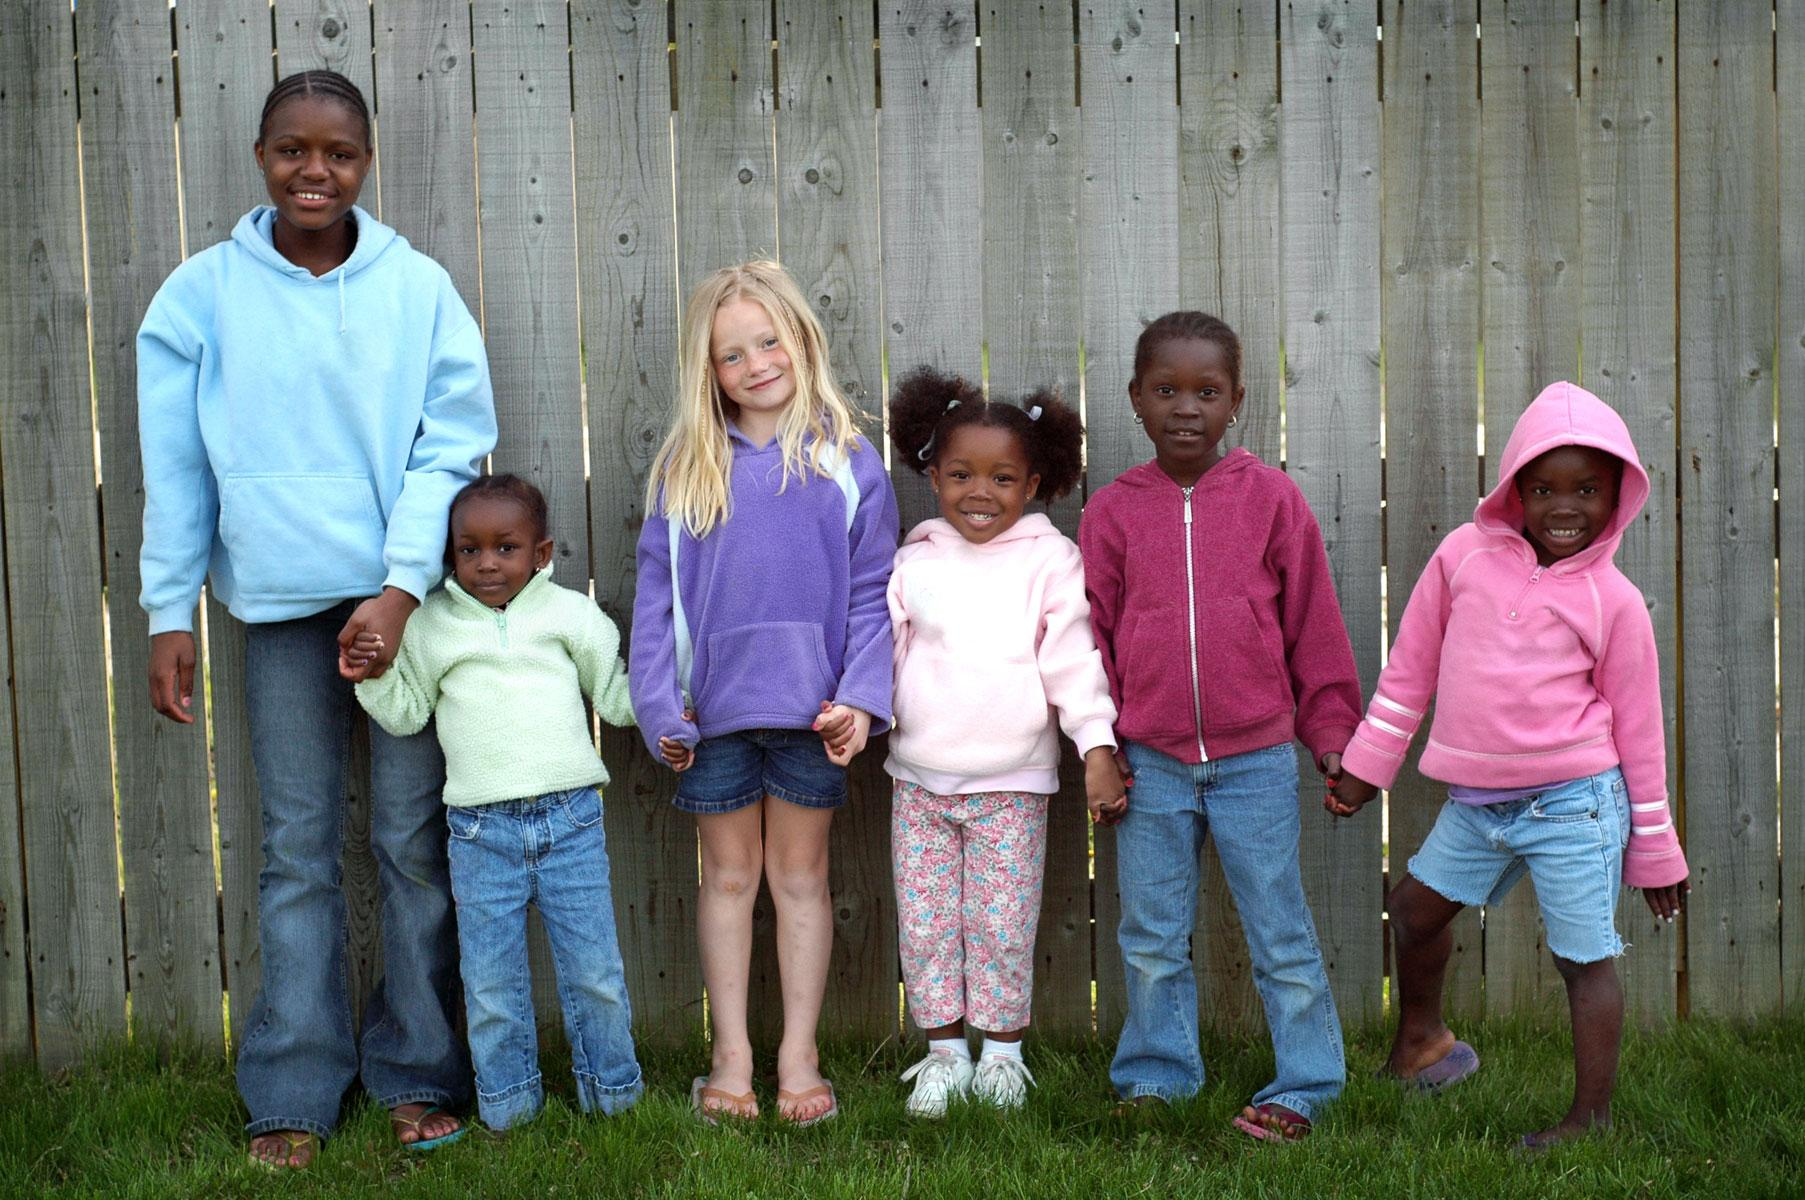 In foster care, more than 60% of offspring spend 2 to 5 years in the coordination before being adopted.